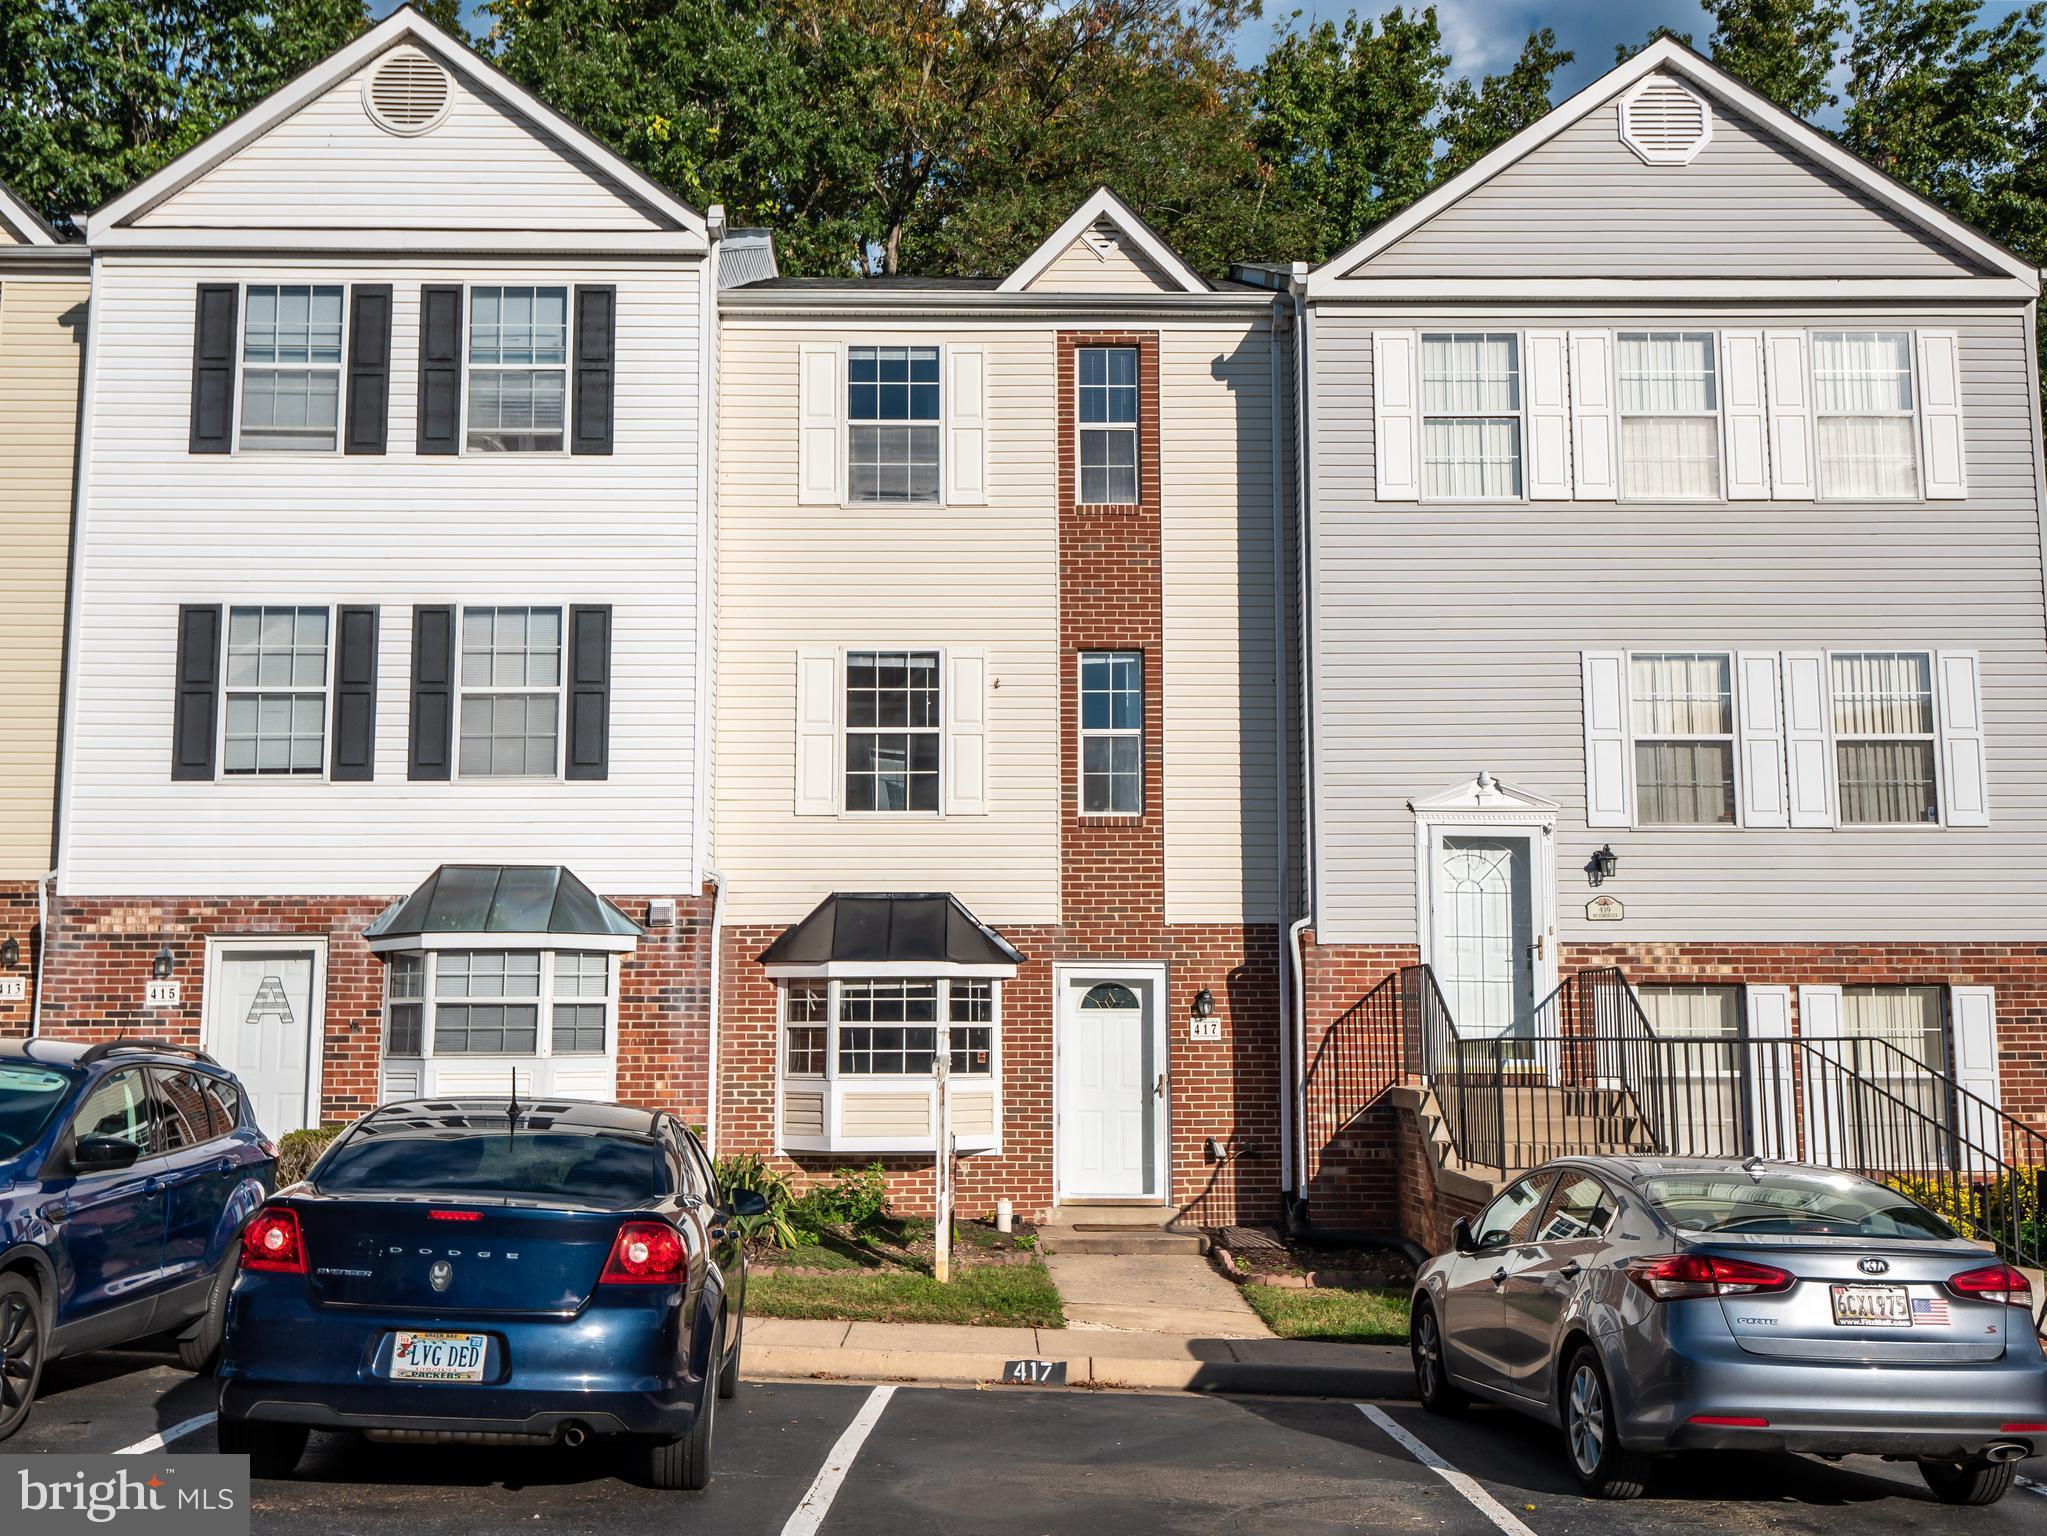 Great town house style condo with over 1500 square feet of space! This quaint town house condo offer